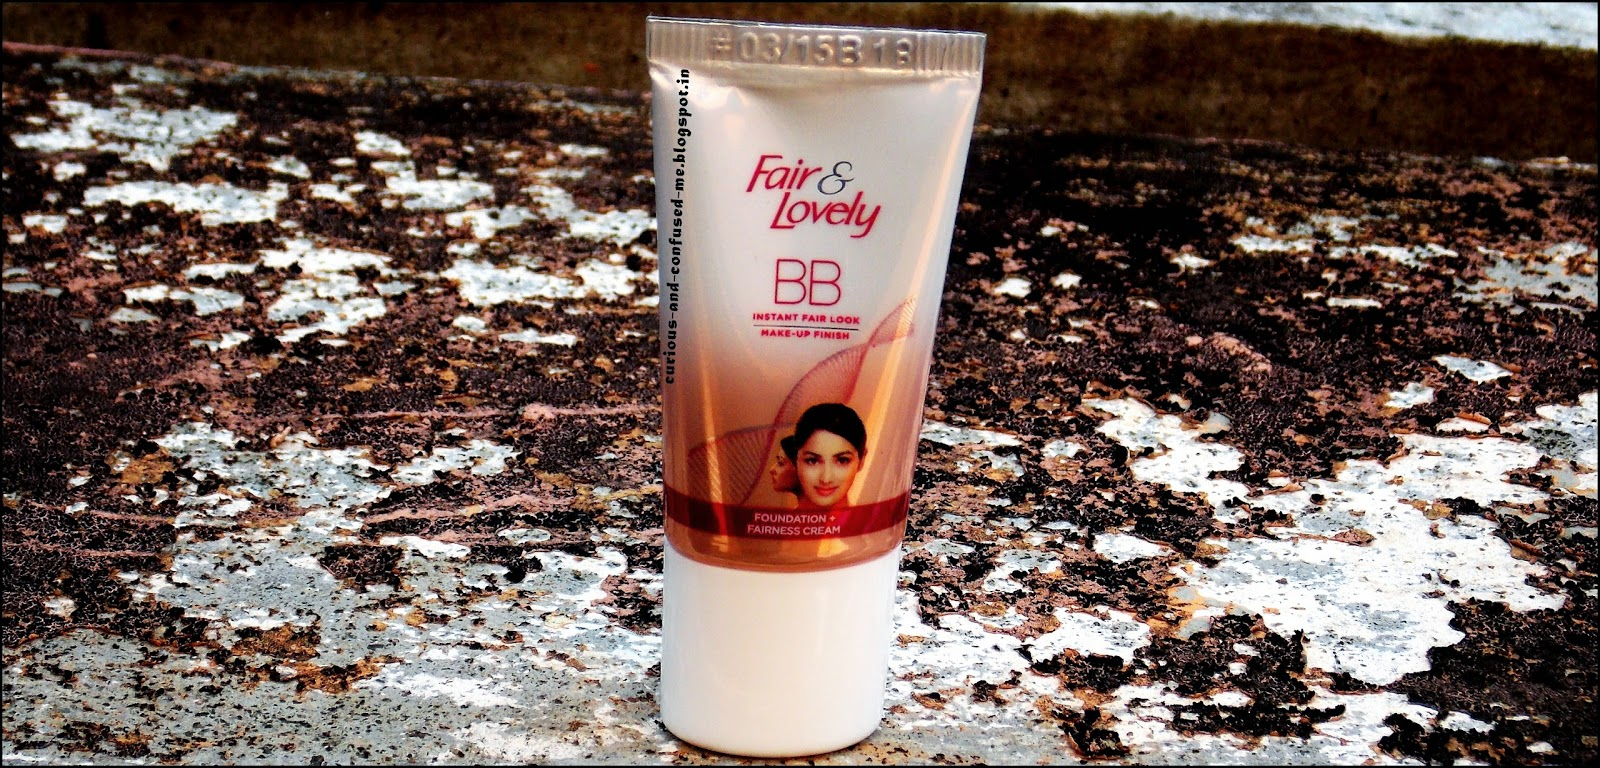 Fair and Lovely BB cream review, Fair and Lovely BB cream swatch, Fair and Lovely BB cream good or bad, BB cream in India, Dusky beauty blogger.